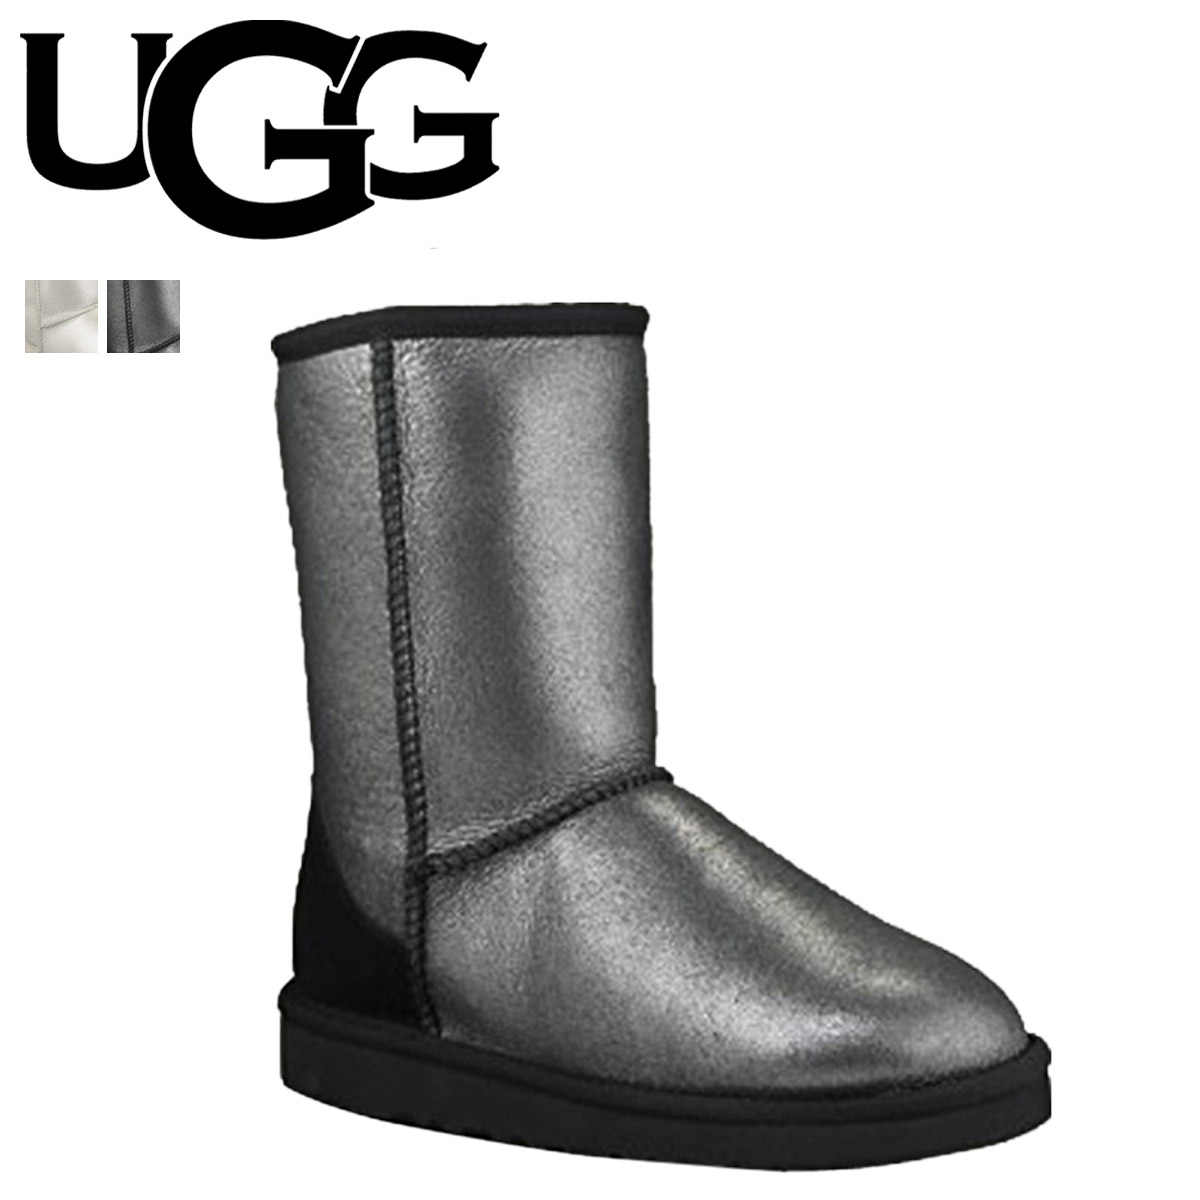 ... the winter warm UGG. Even want to wear heels, such as walking outside for a long time in the amusement park dating scene, light, excellent compatibility ...